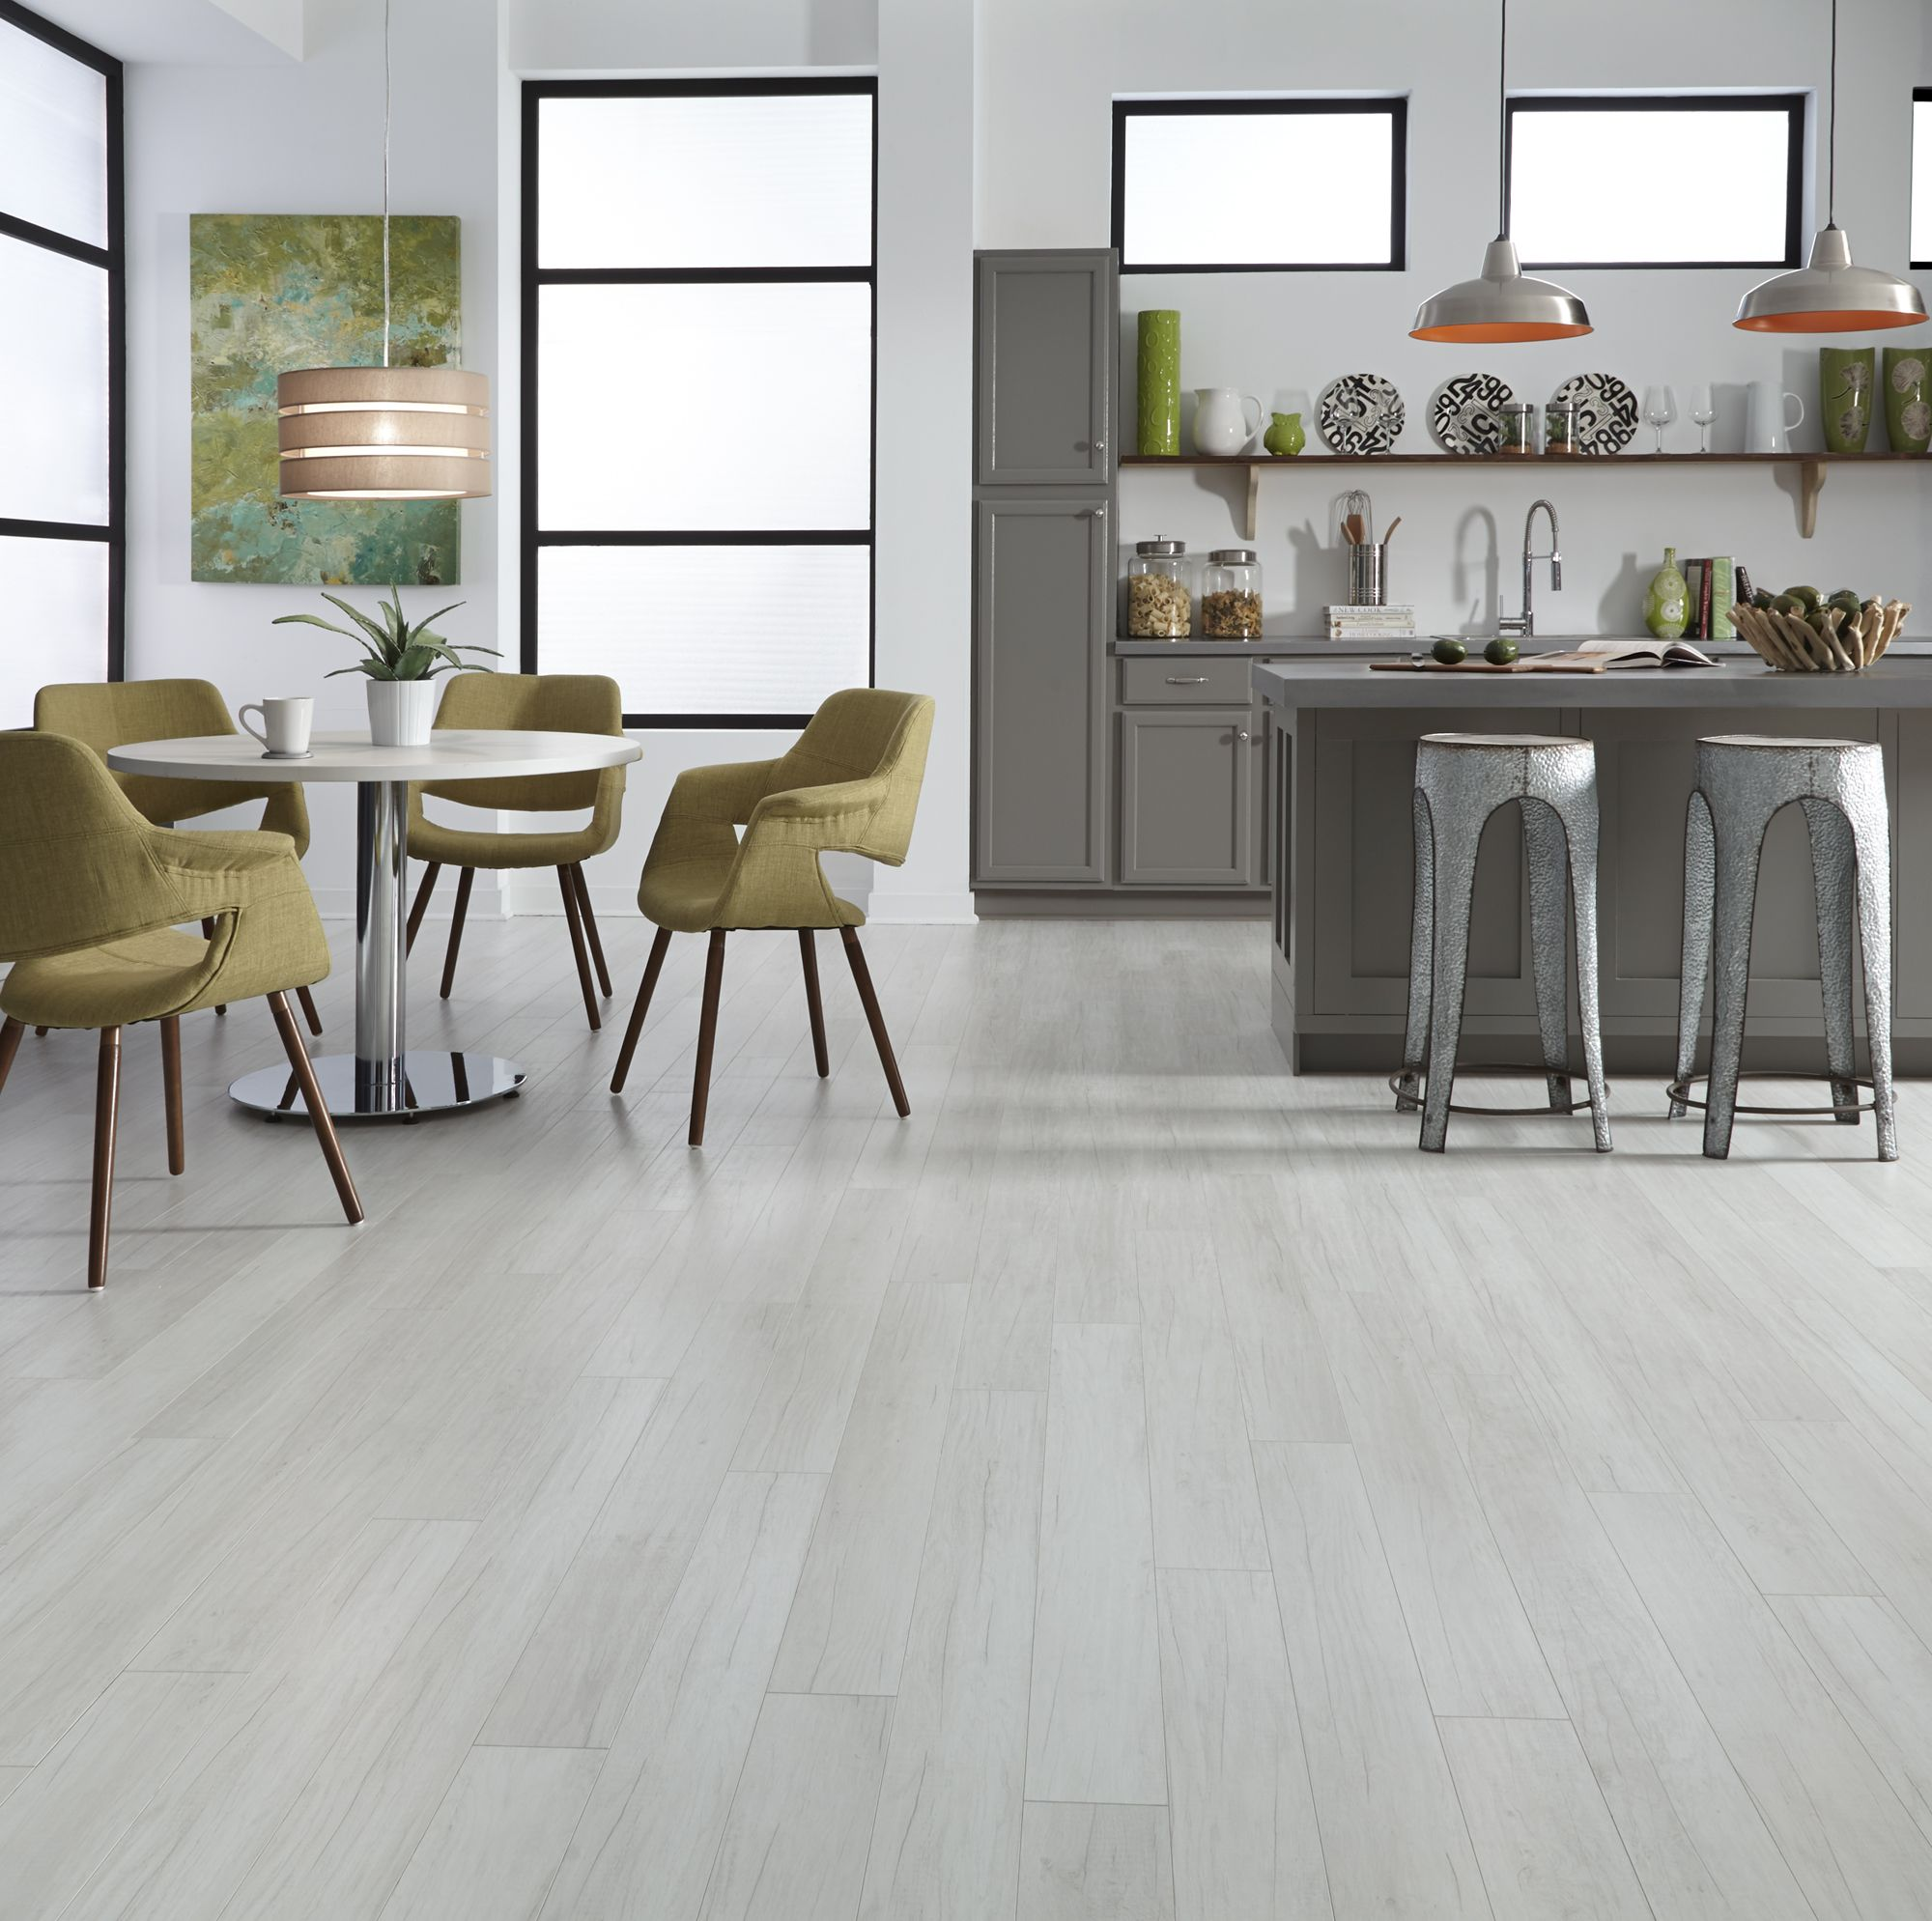 Gray Wood Flooring Kitchen: A Light & Bright NEW Dream Home Laminate